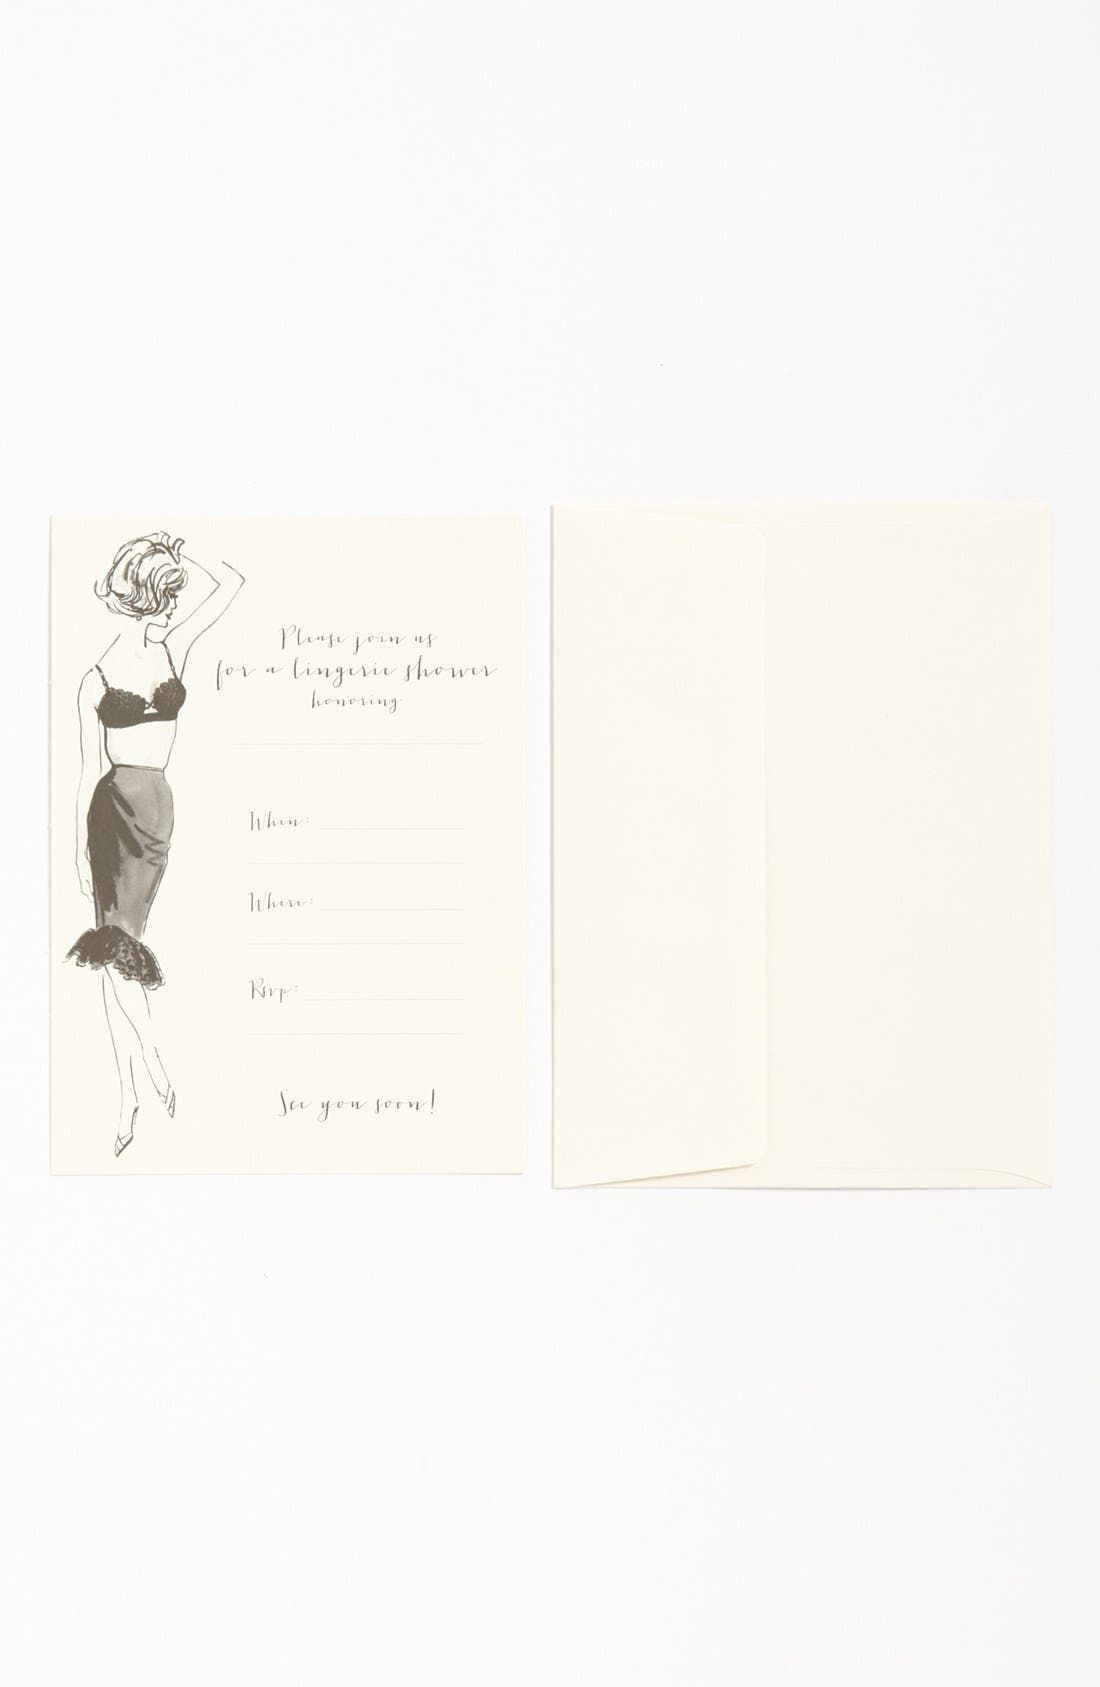 Alternate Image 1 Selected - Kitchen Papers by Cake Lingerie Shower Invitations (Set of 10)